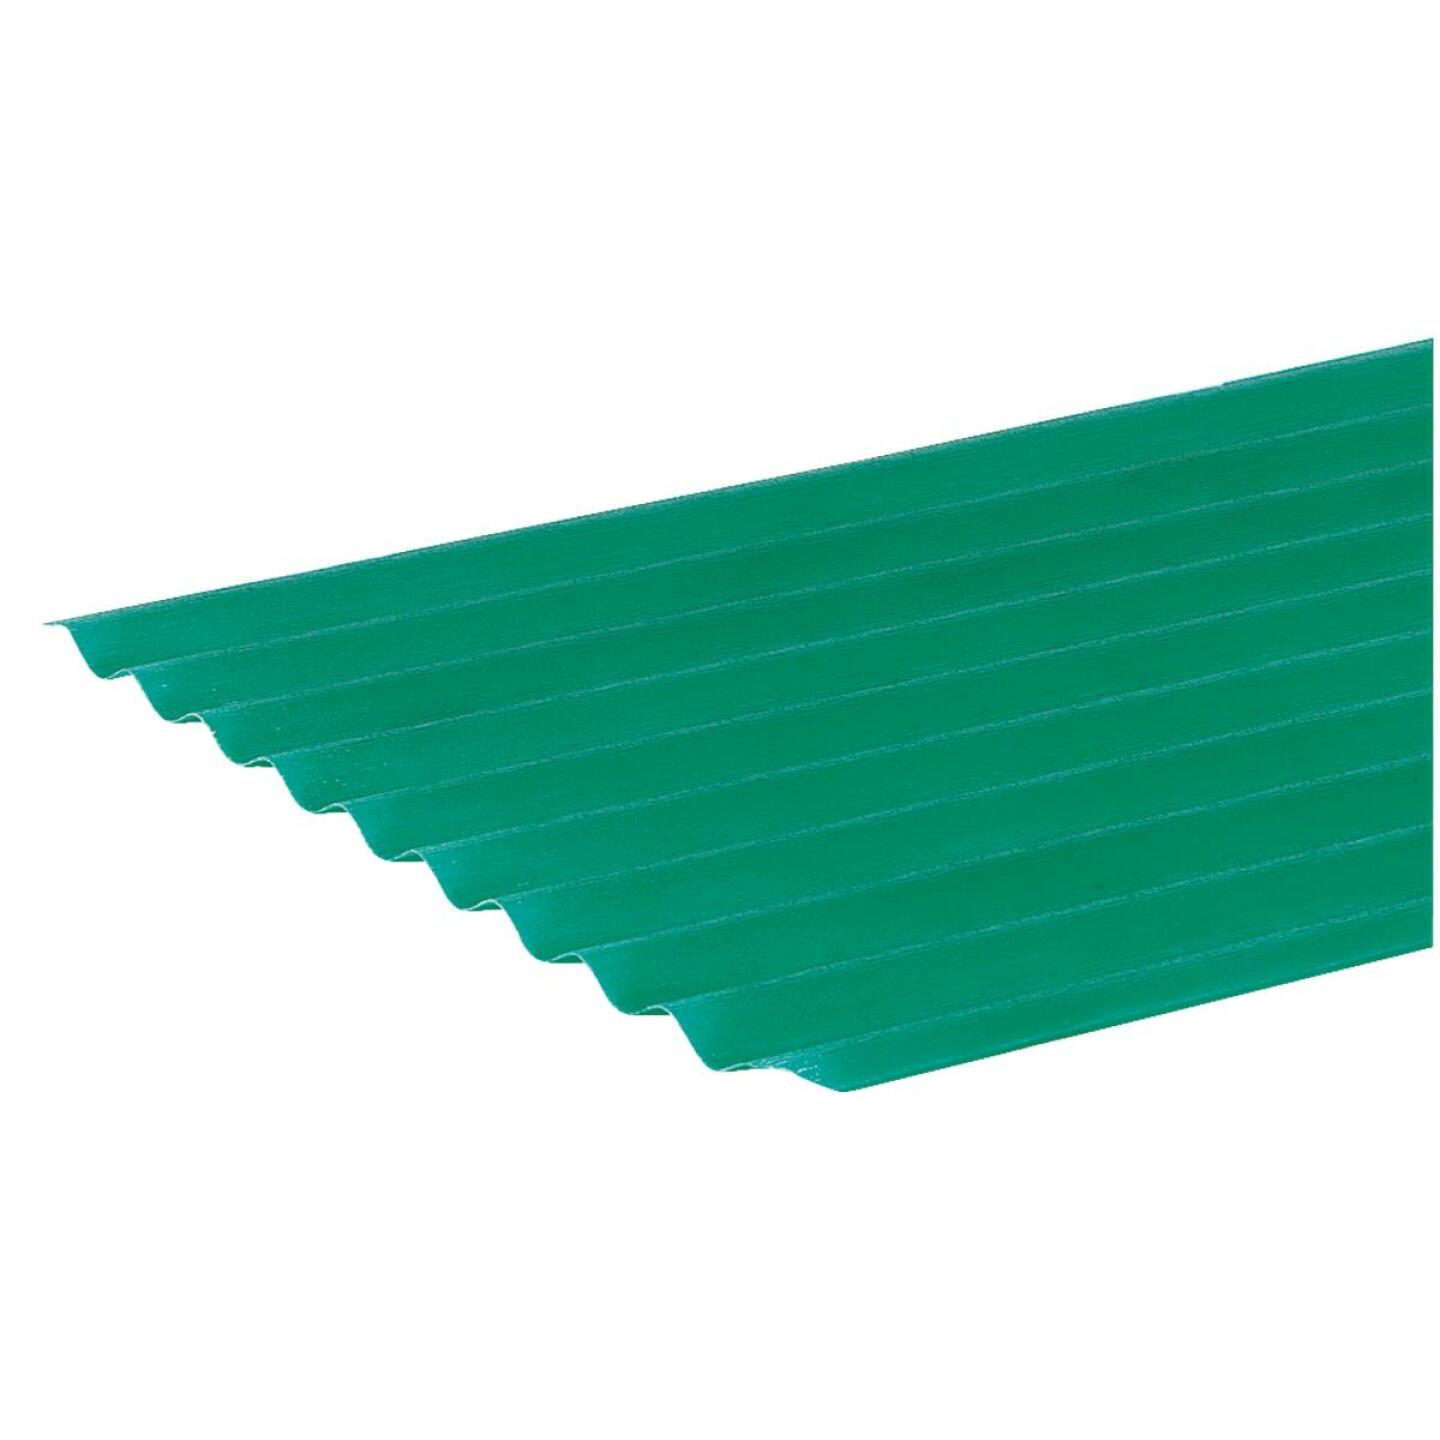 Sequentia WeatherGlaze 26 In. x 10 Ft. Green Round 1-Sided Fiberglass Corrugated Panels Image 2